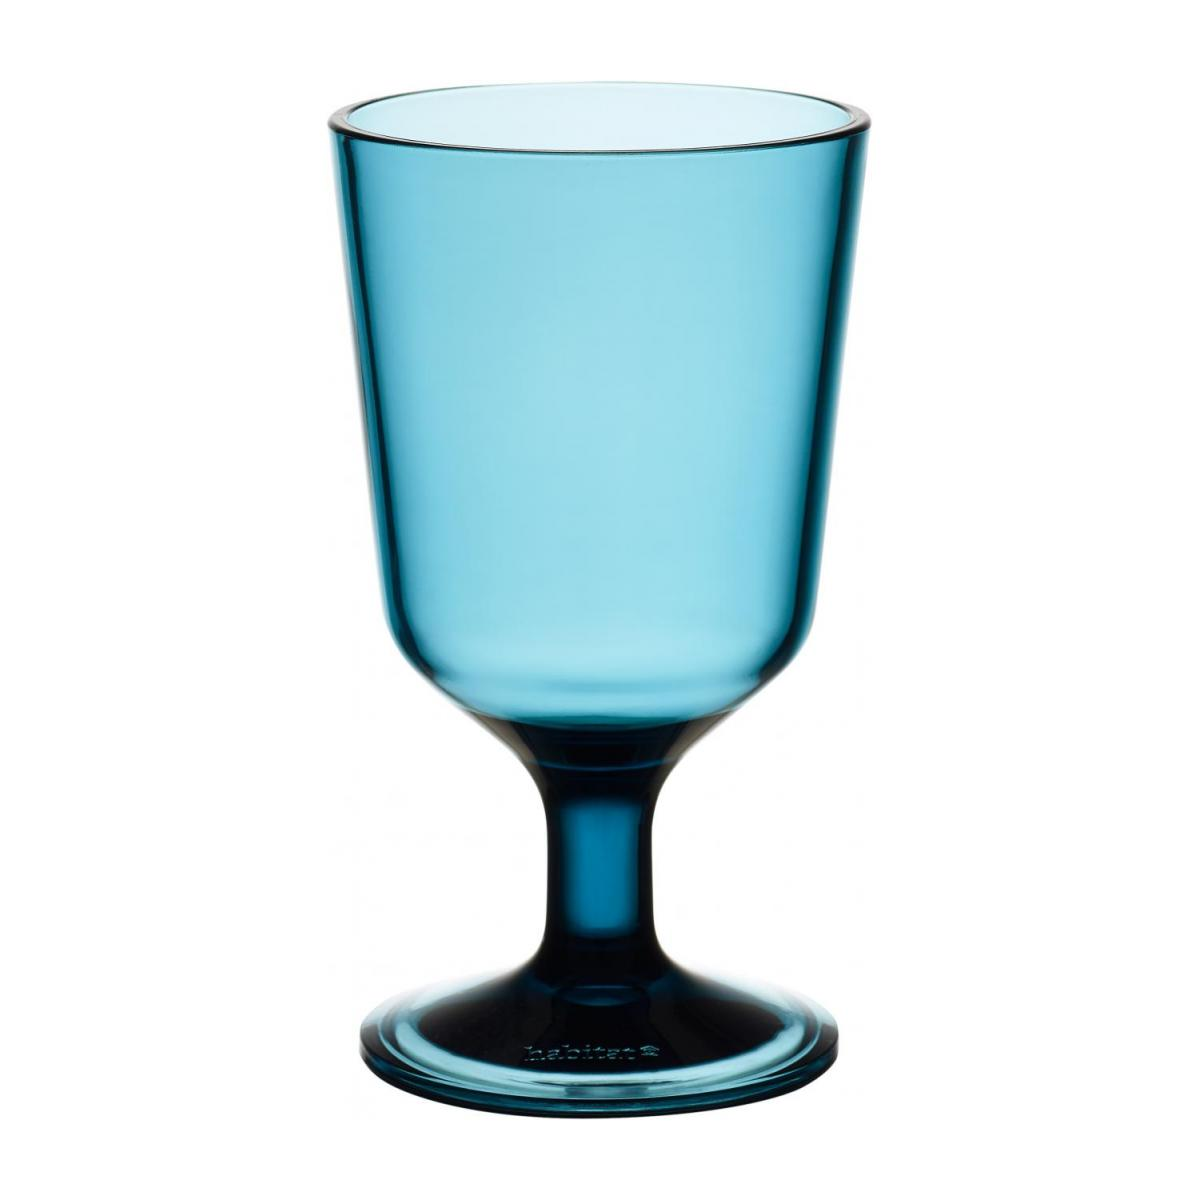 Acrylic Wine Glass Blue n°1